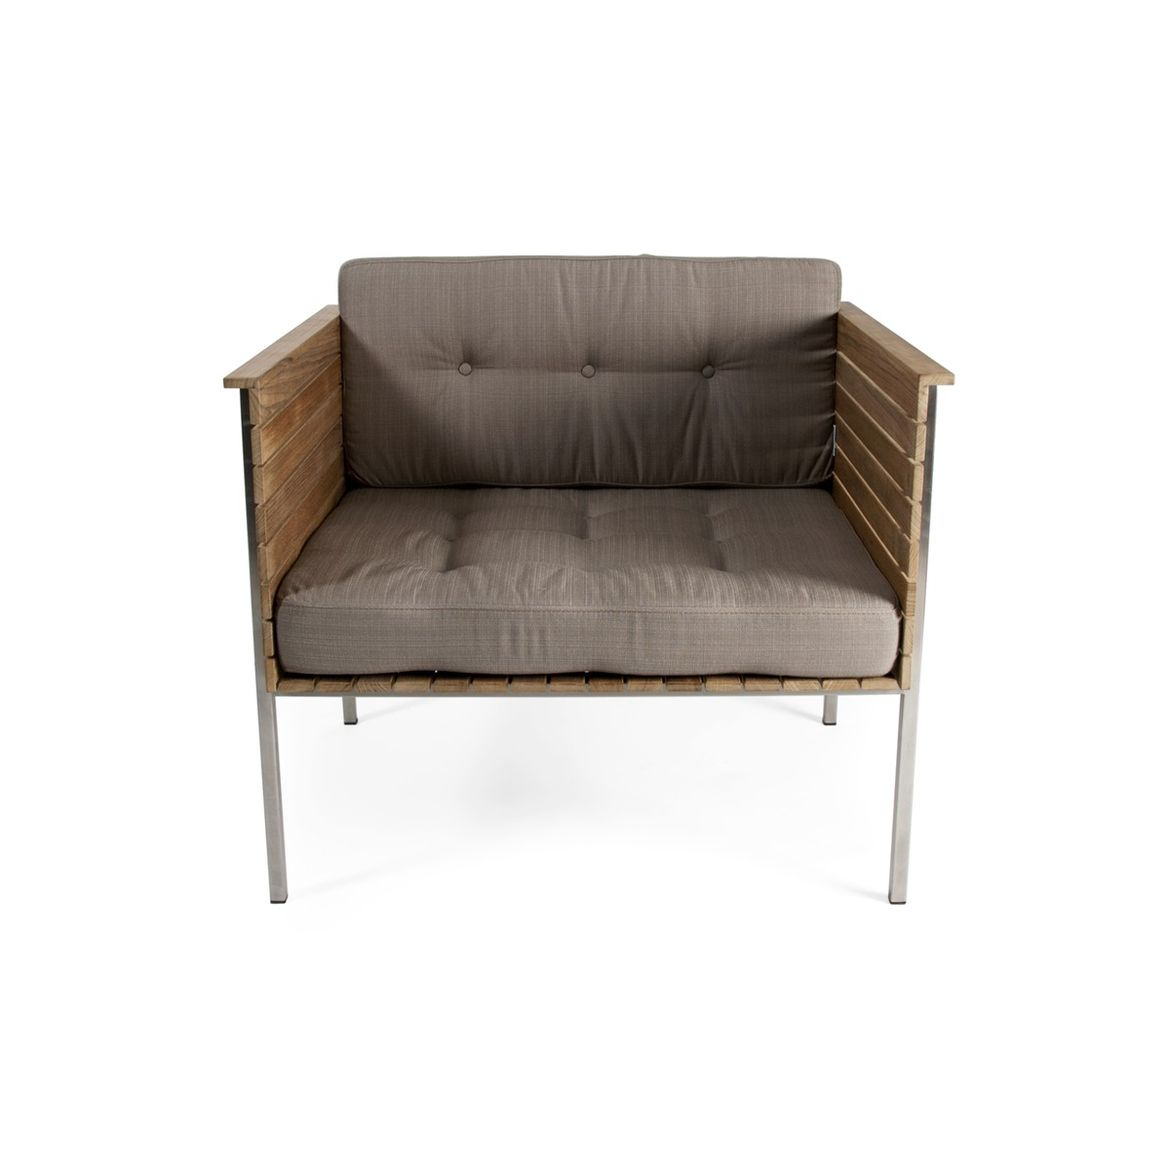 Teak, steel, and fabric lounge chair for indoor and outdoor use